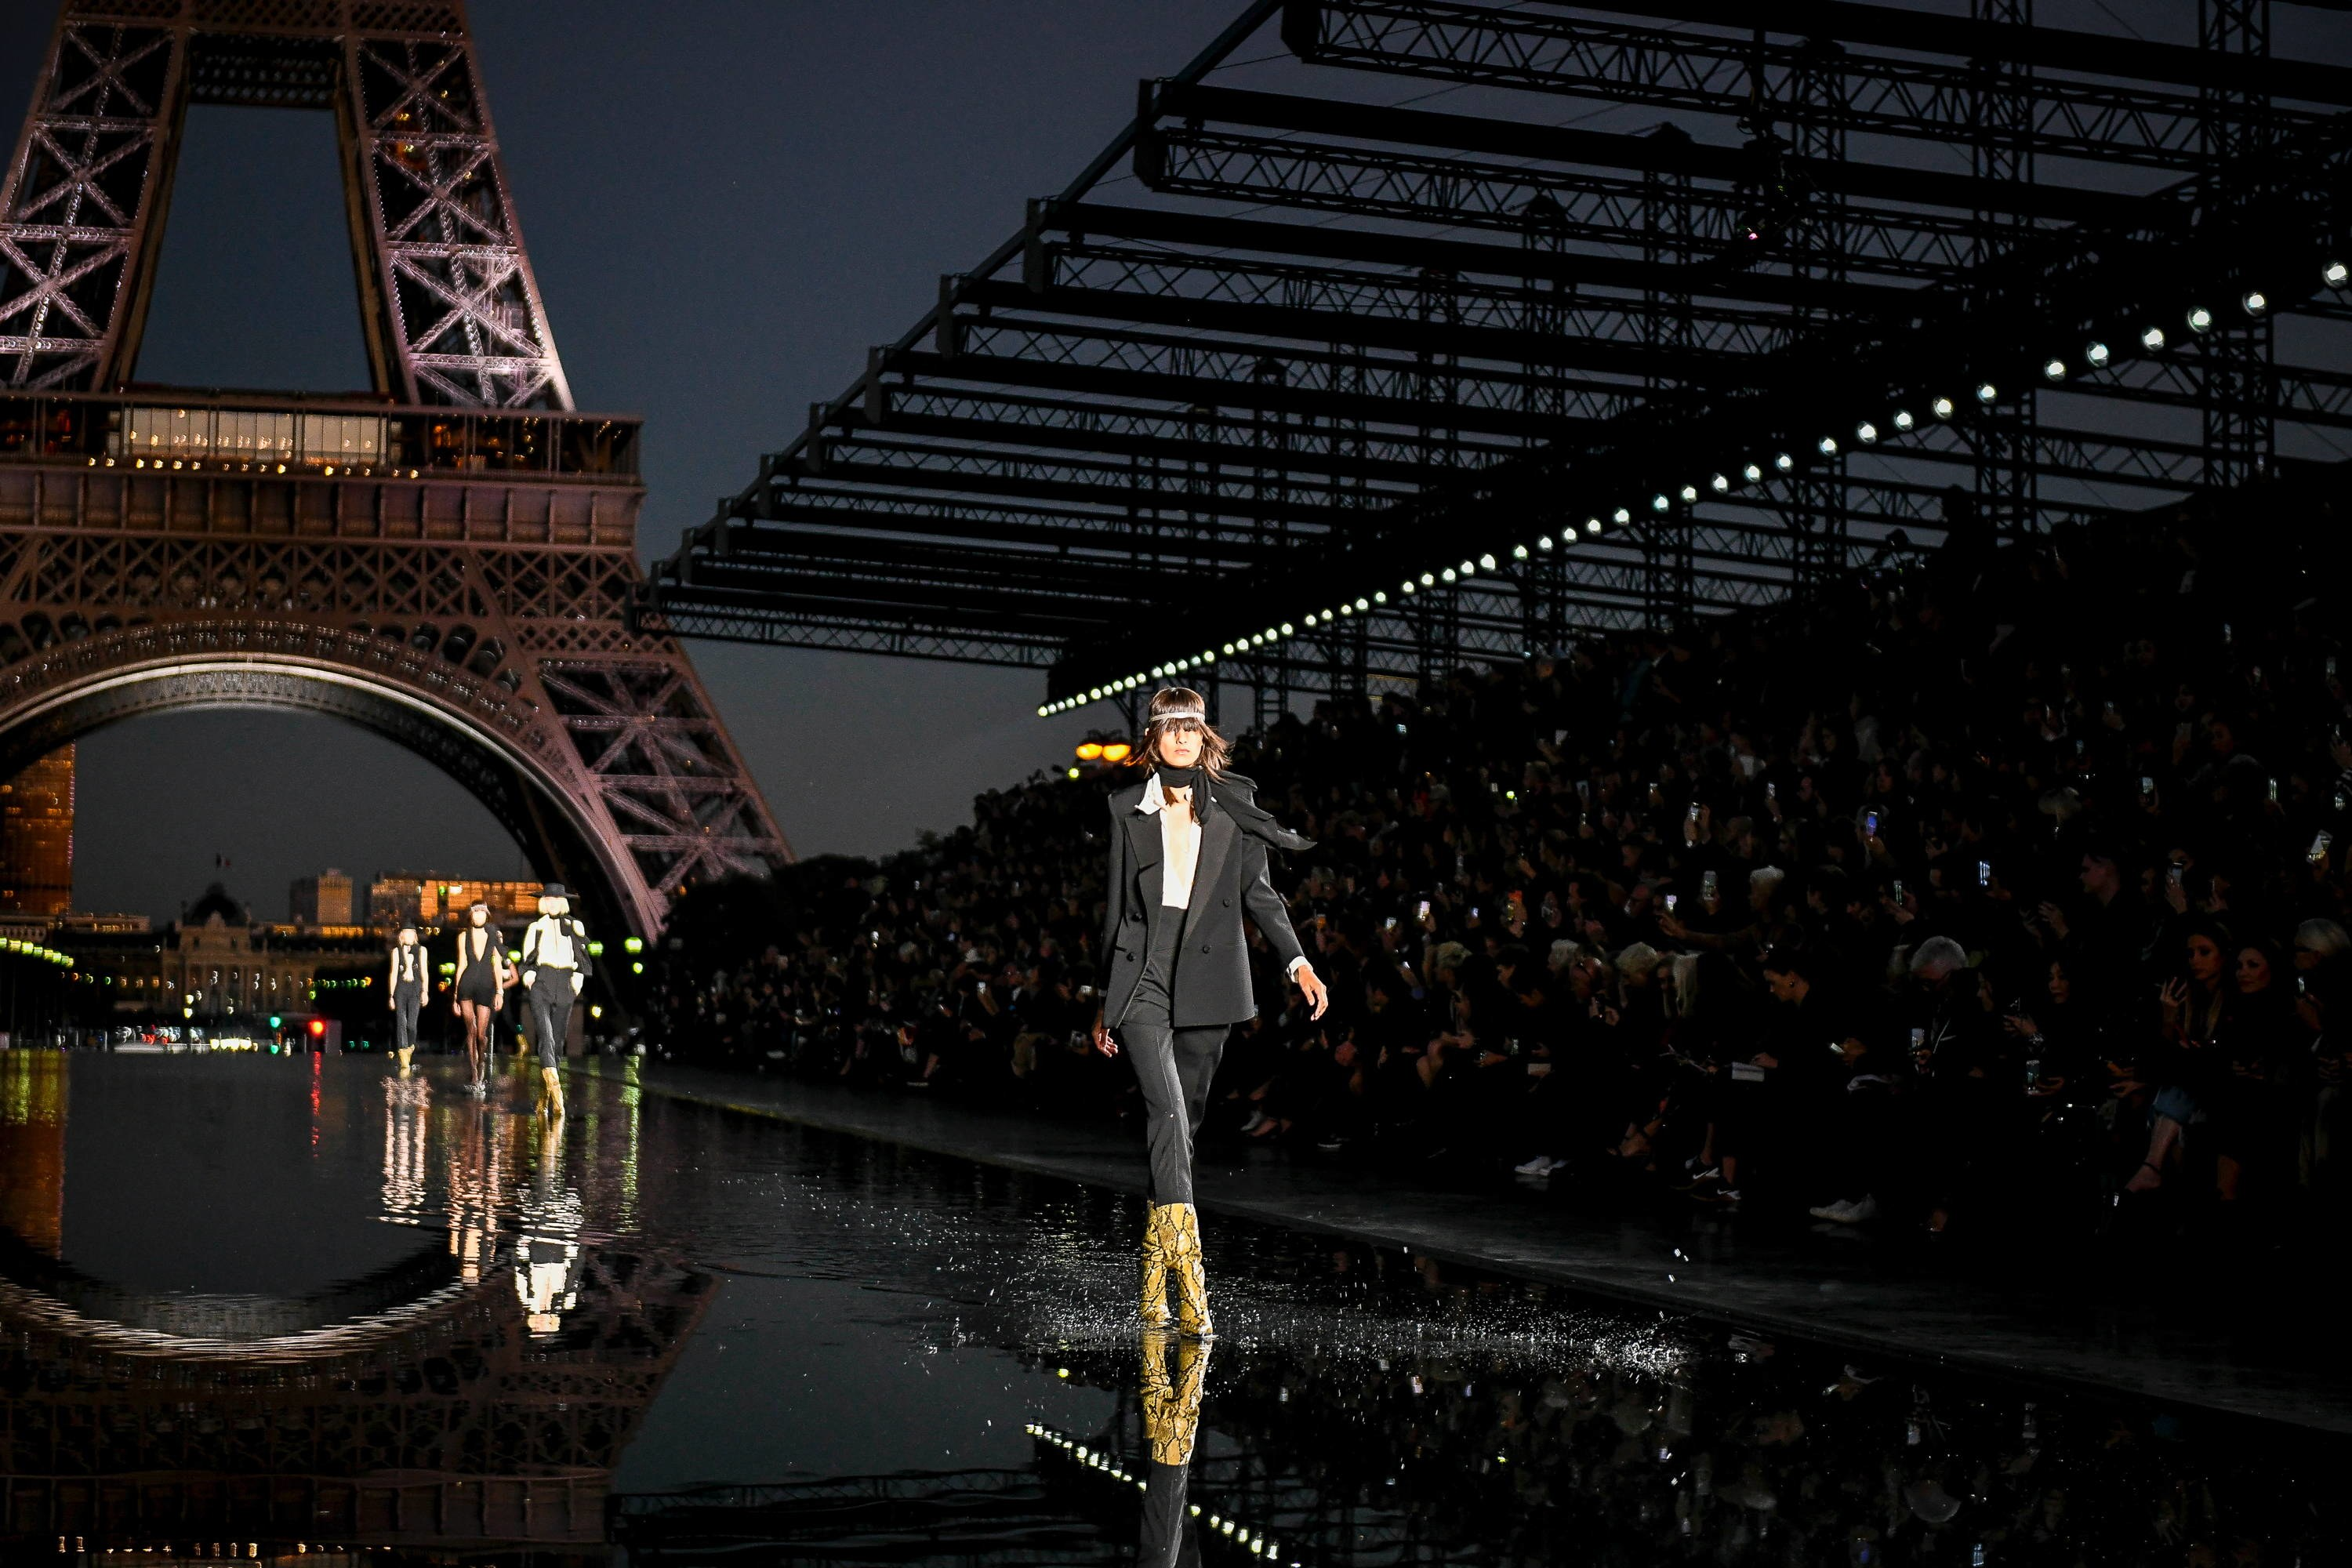 Paris Fashion Week, PFW, pfw, Saint Laurent Spring 2019 Ready-to-Wear, show, runway, creative director, French fashion house, Anthony Vaccarello, style, collection 2019, tiny black dress, street-style trends 2019, designer Paris Fashion Week: Christian Dior Spring 2019 Ready-to-Wear Collection Fashion Shows 26 09 PARIS FASHION WEEK: CHRISTIAN DIOR SPRING 2019 READY-TO-WEAR COLLECTION Continuing the story of her cruise collection, Maria Grazia Chiuri invited fans of fashion house Christian Dior, currently entrusted to her, over to the hippodr... Milan Fashion Week: Jil Sander Spring 2019 Ready-to-Wear show review Fashion Shows 21 09 MILAN FASHION WEEK: JIL SANDER SPRING 2019 READY-TO-WEAR SHOW REVIEW After three collections by the creative duo of Luke and Lucie Meier since joining fashion house Jil Sander as co-creative directors, we can say for sure that th...